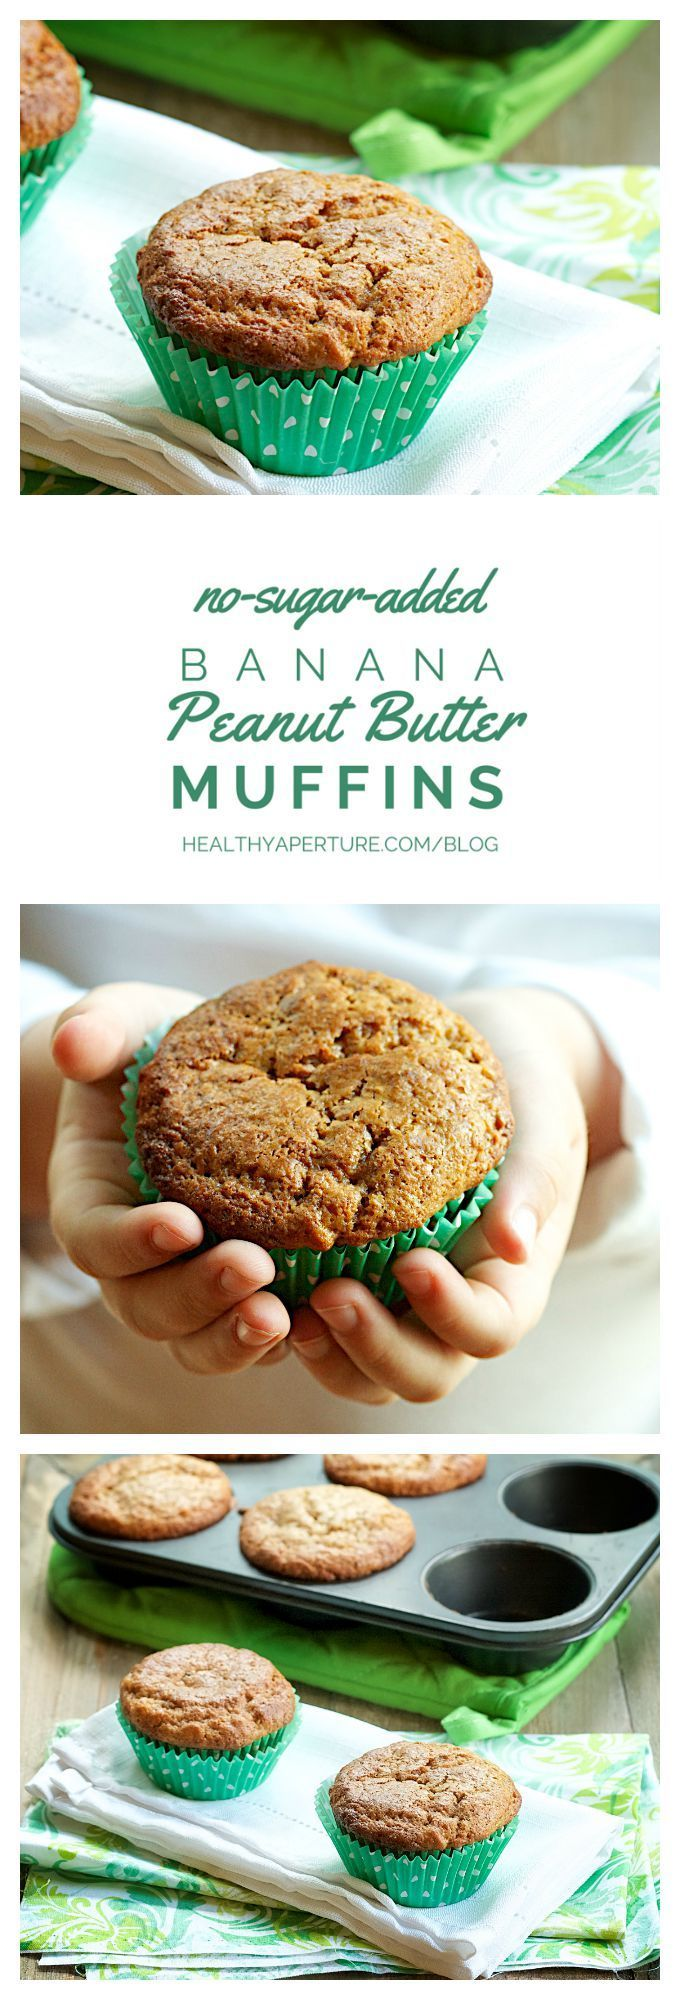 A quick and easy refined sugar free recipe for family favorite peanut butter and banana muffins. Made with oat flour and powdered peanut butter, these muffins are fiber-rich and offer a protein boost over regular breakfast muffins. Recipe by @ReganJonesRD on HealthyAperture.com.